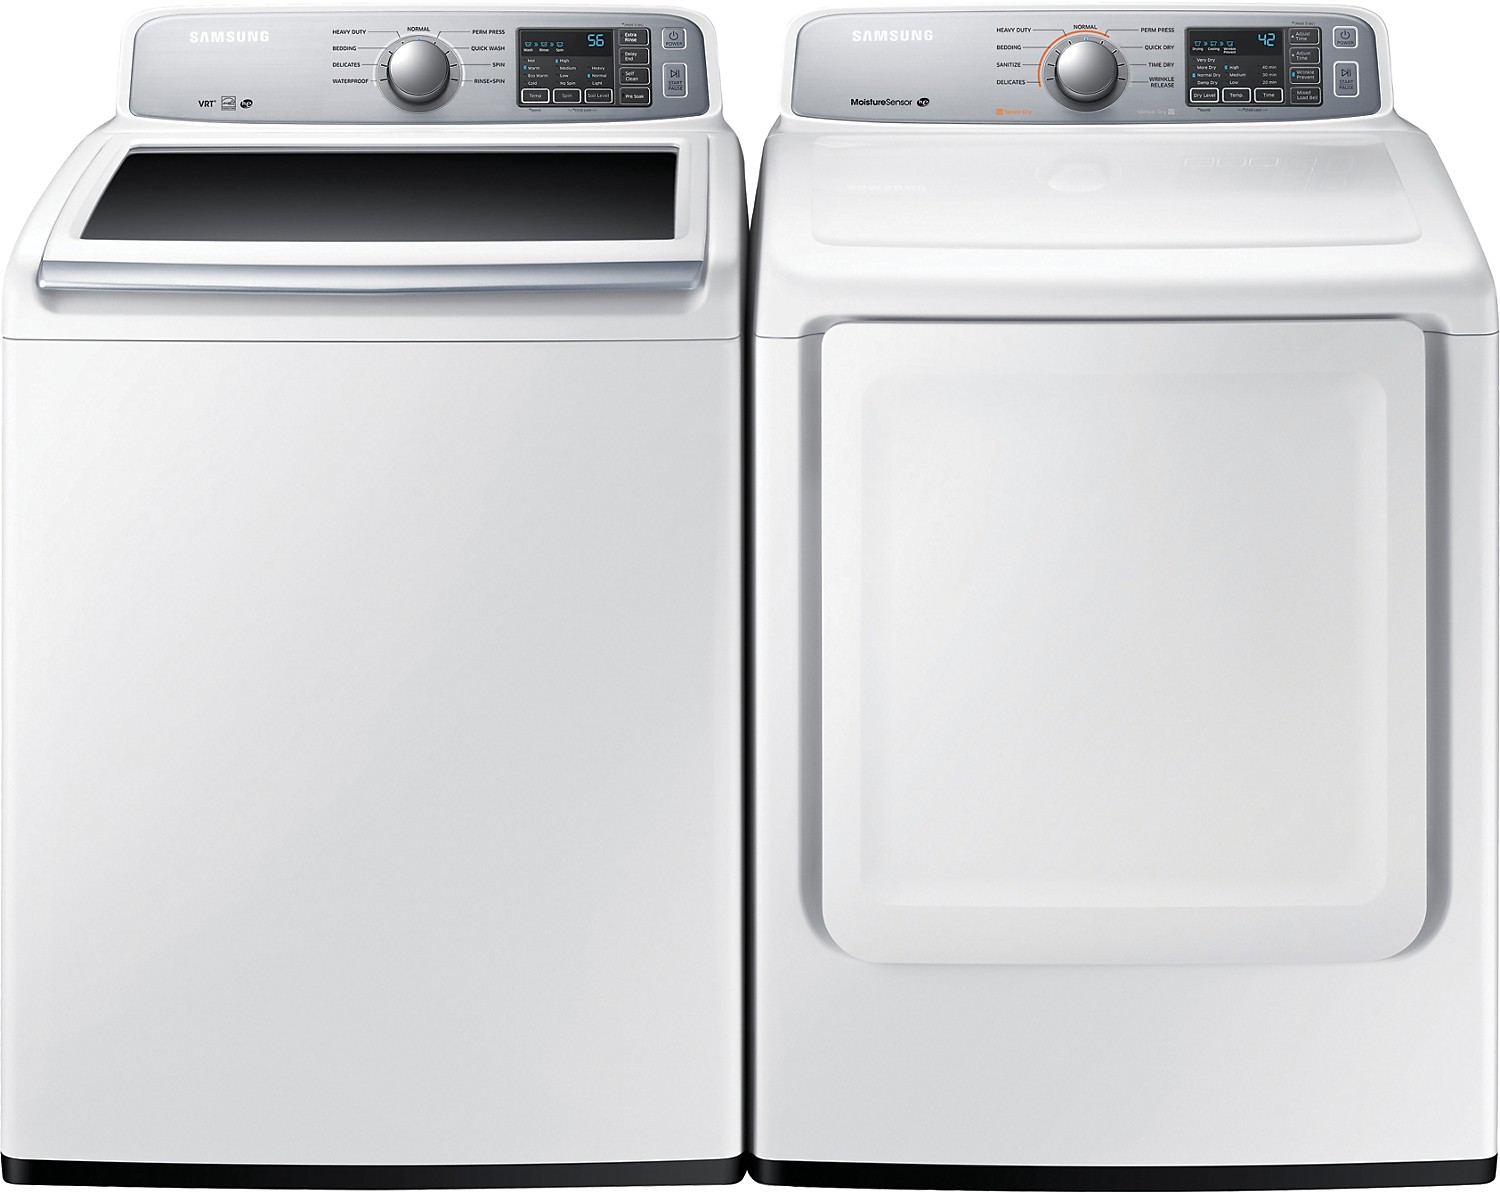 Work surface for washer and dryer - Samsung Top Loading Washer White